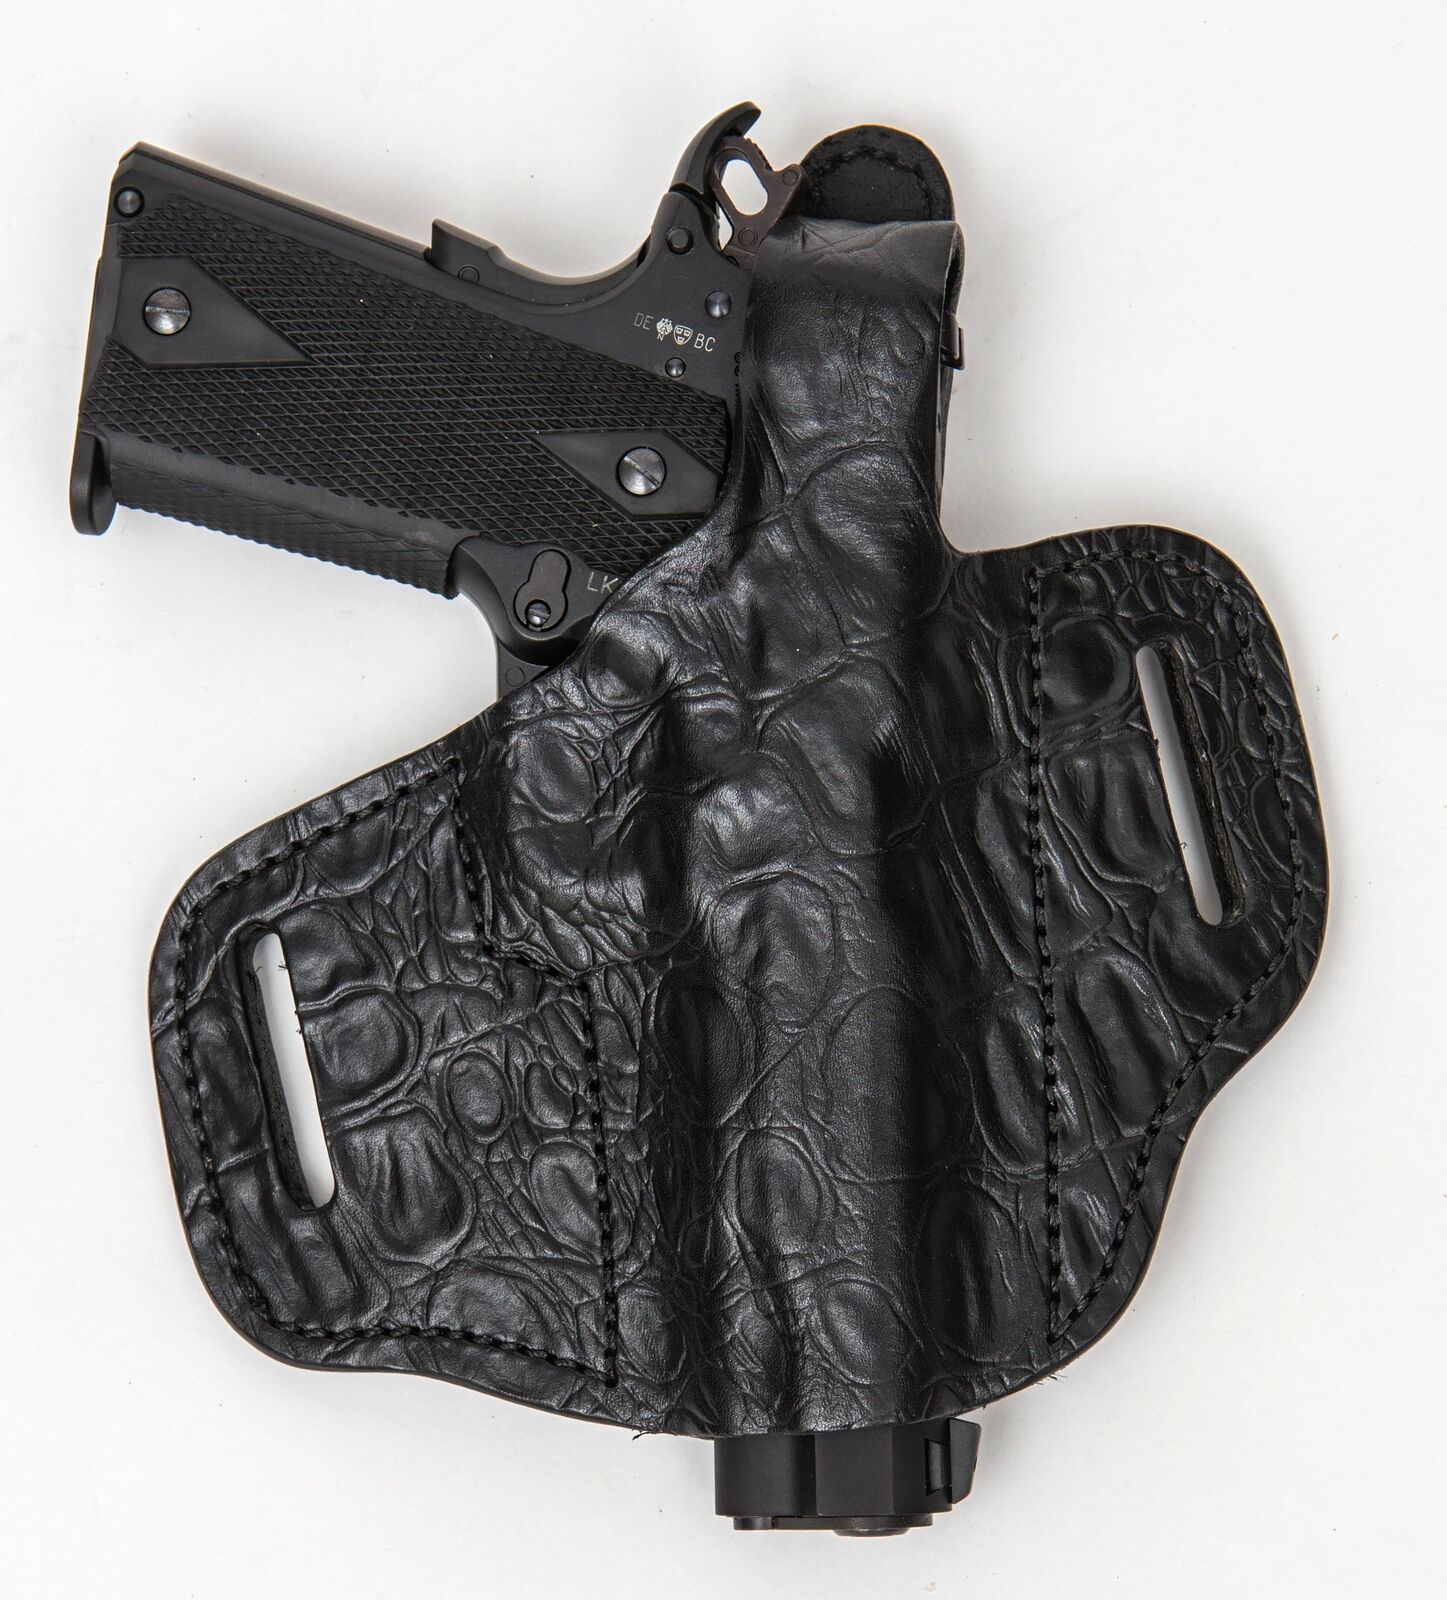 On Duty Conceal RH LH OWB Leather Gun Holster For FNS 40 Longslide